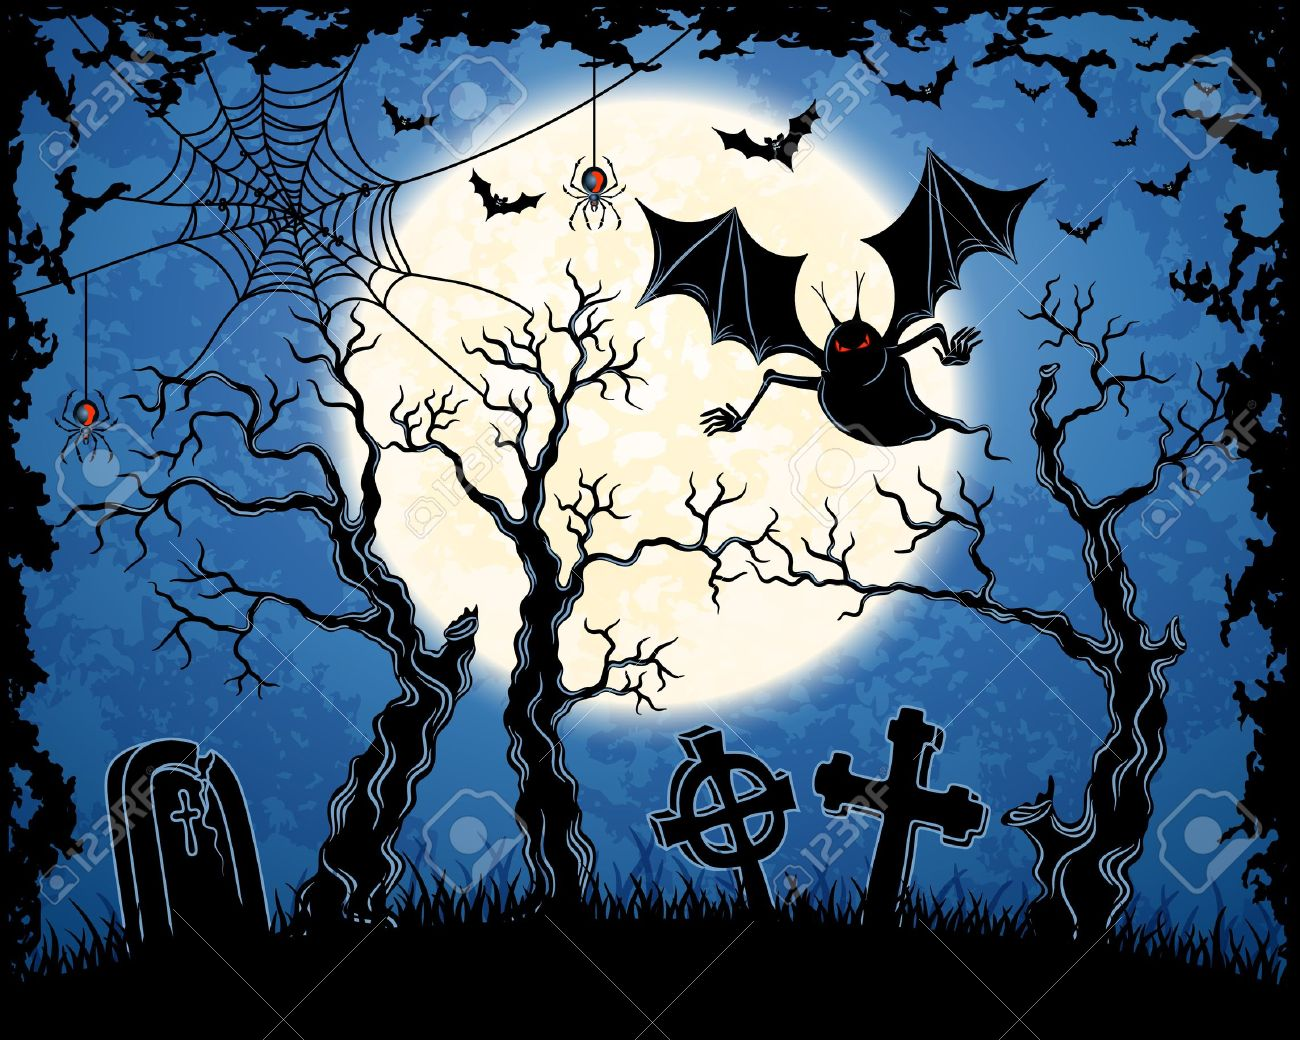 Spooky vampire on cemetery. Blue grungy halloween background.  Illustration. Stock Vector - 15657462